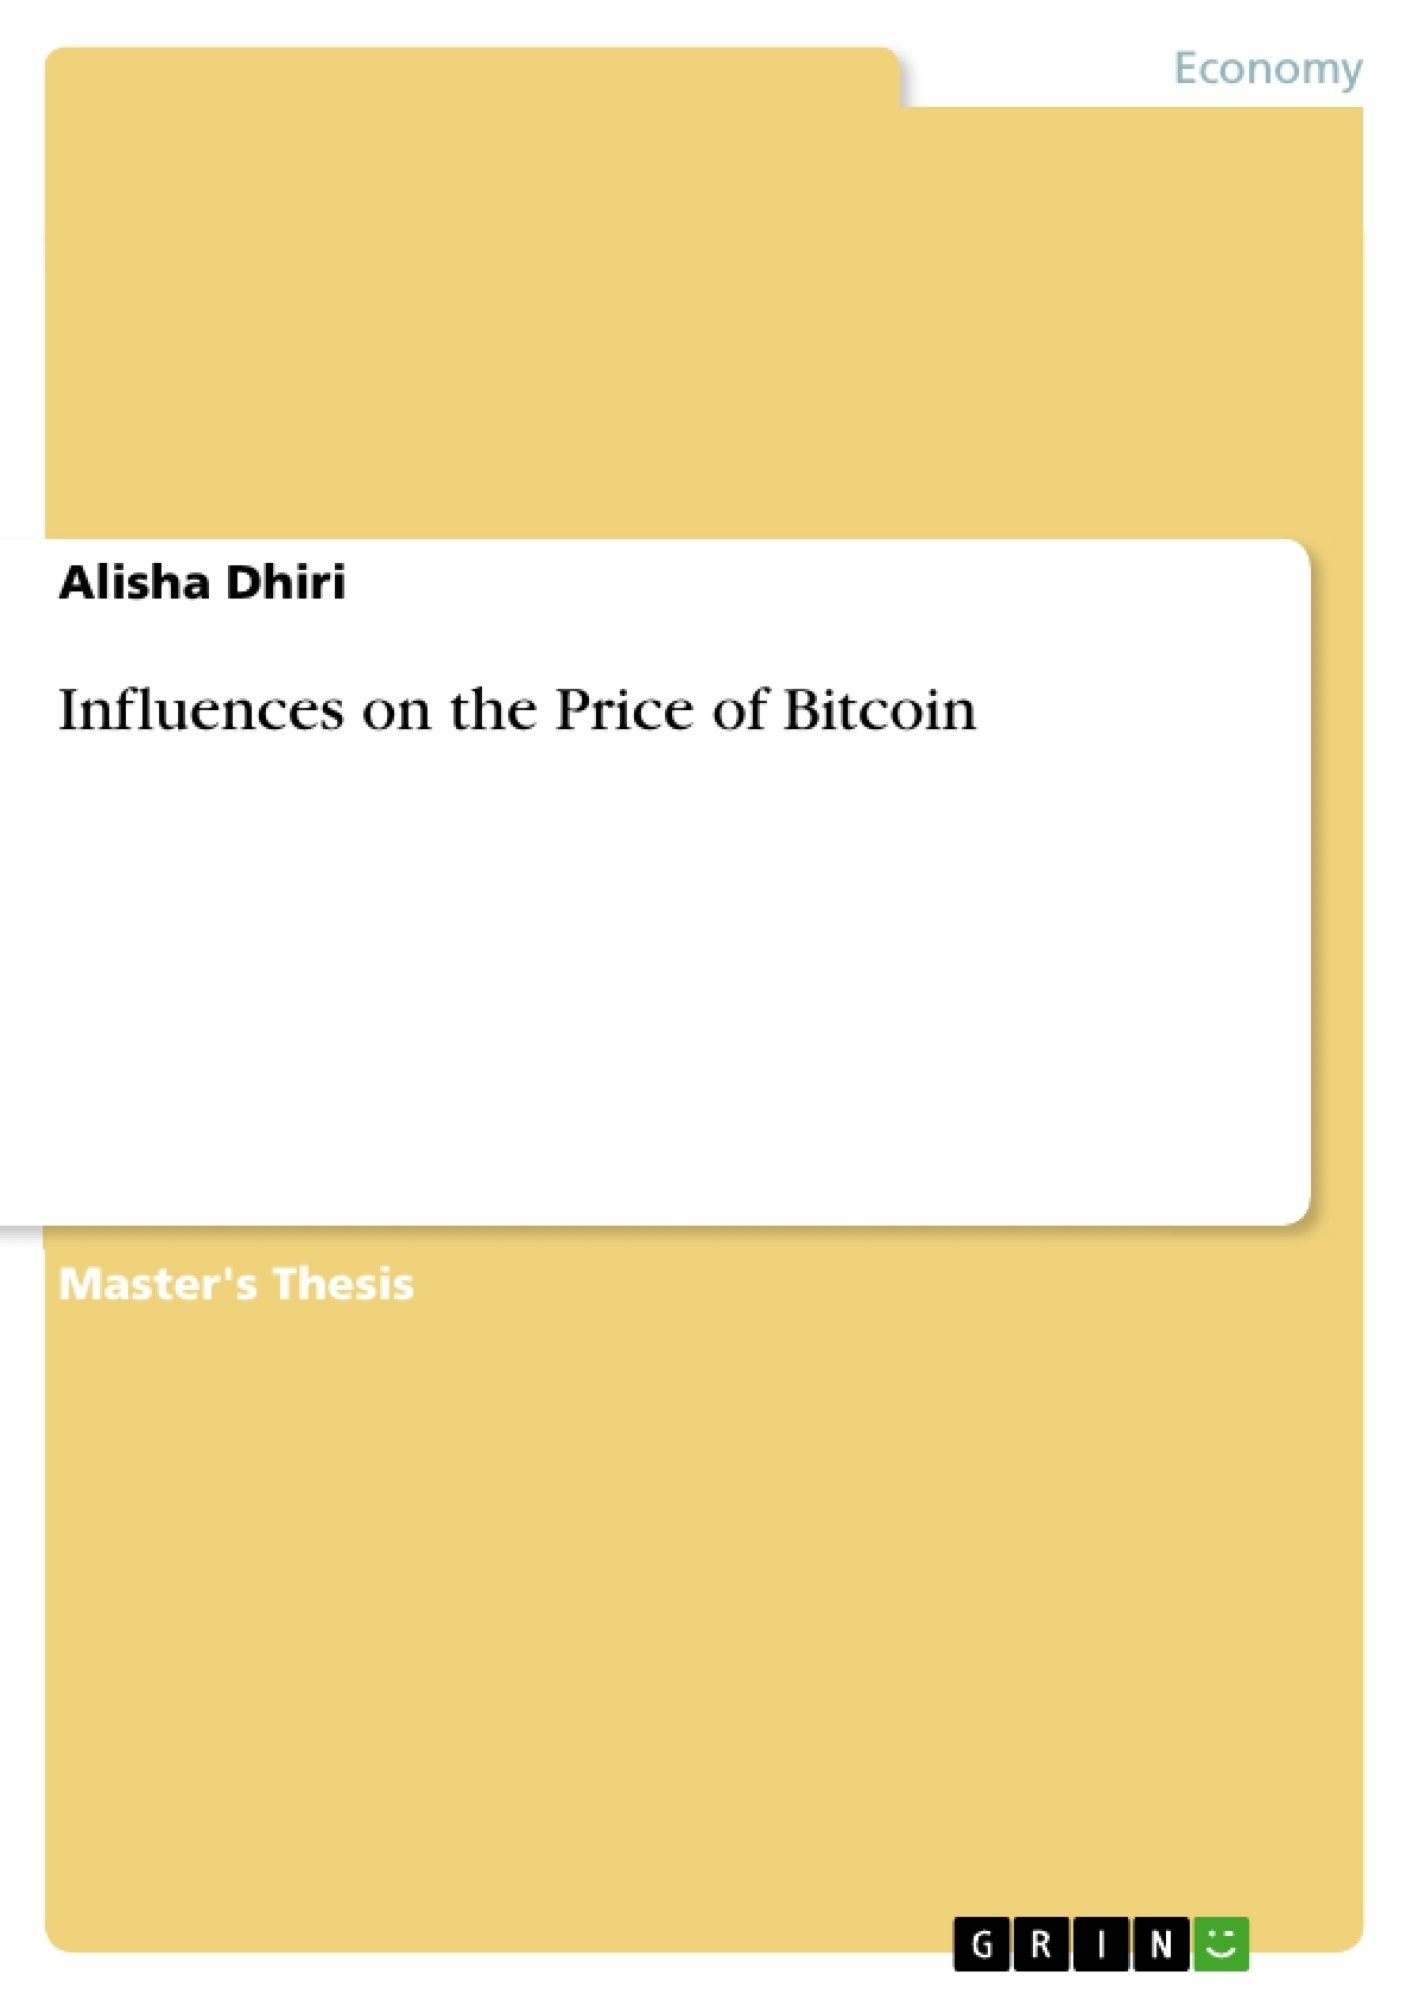 Title: Influences on the Price of Bitcoin